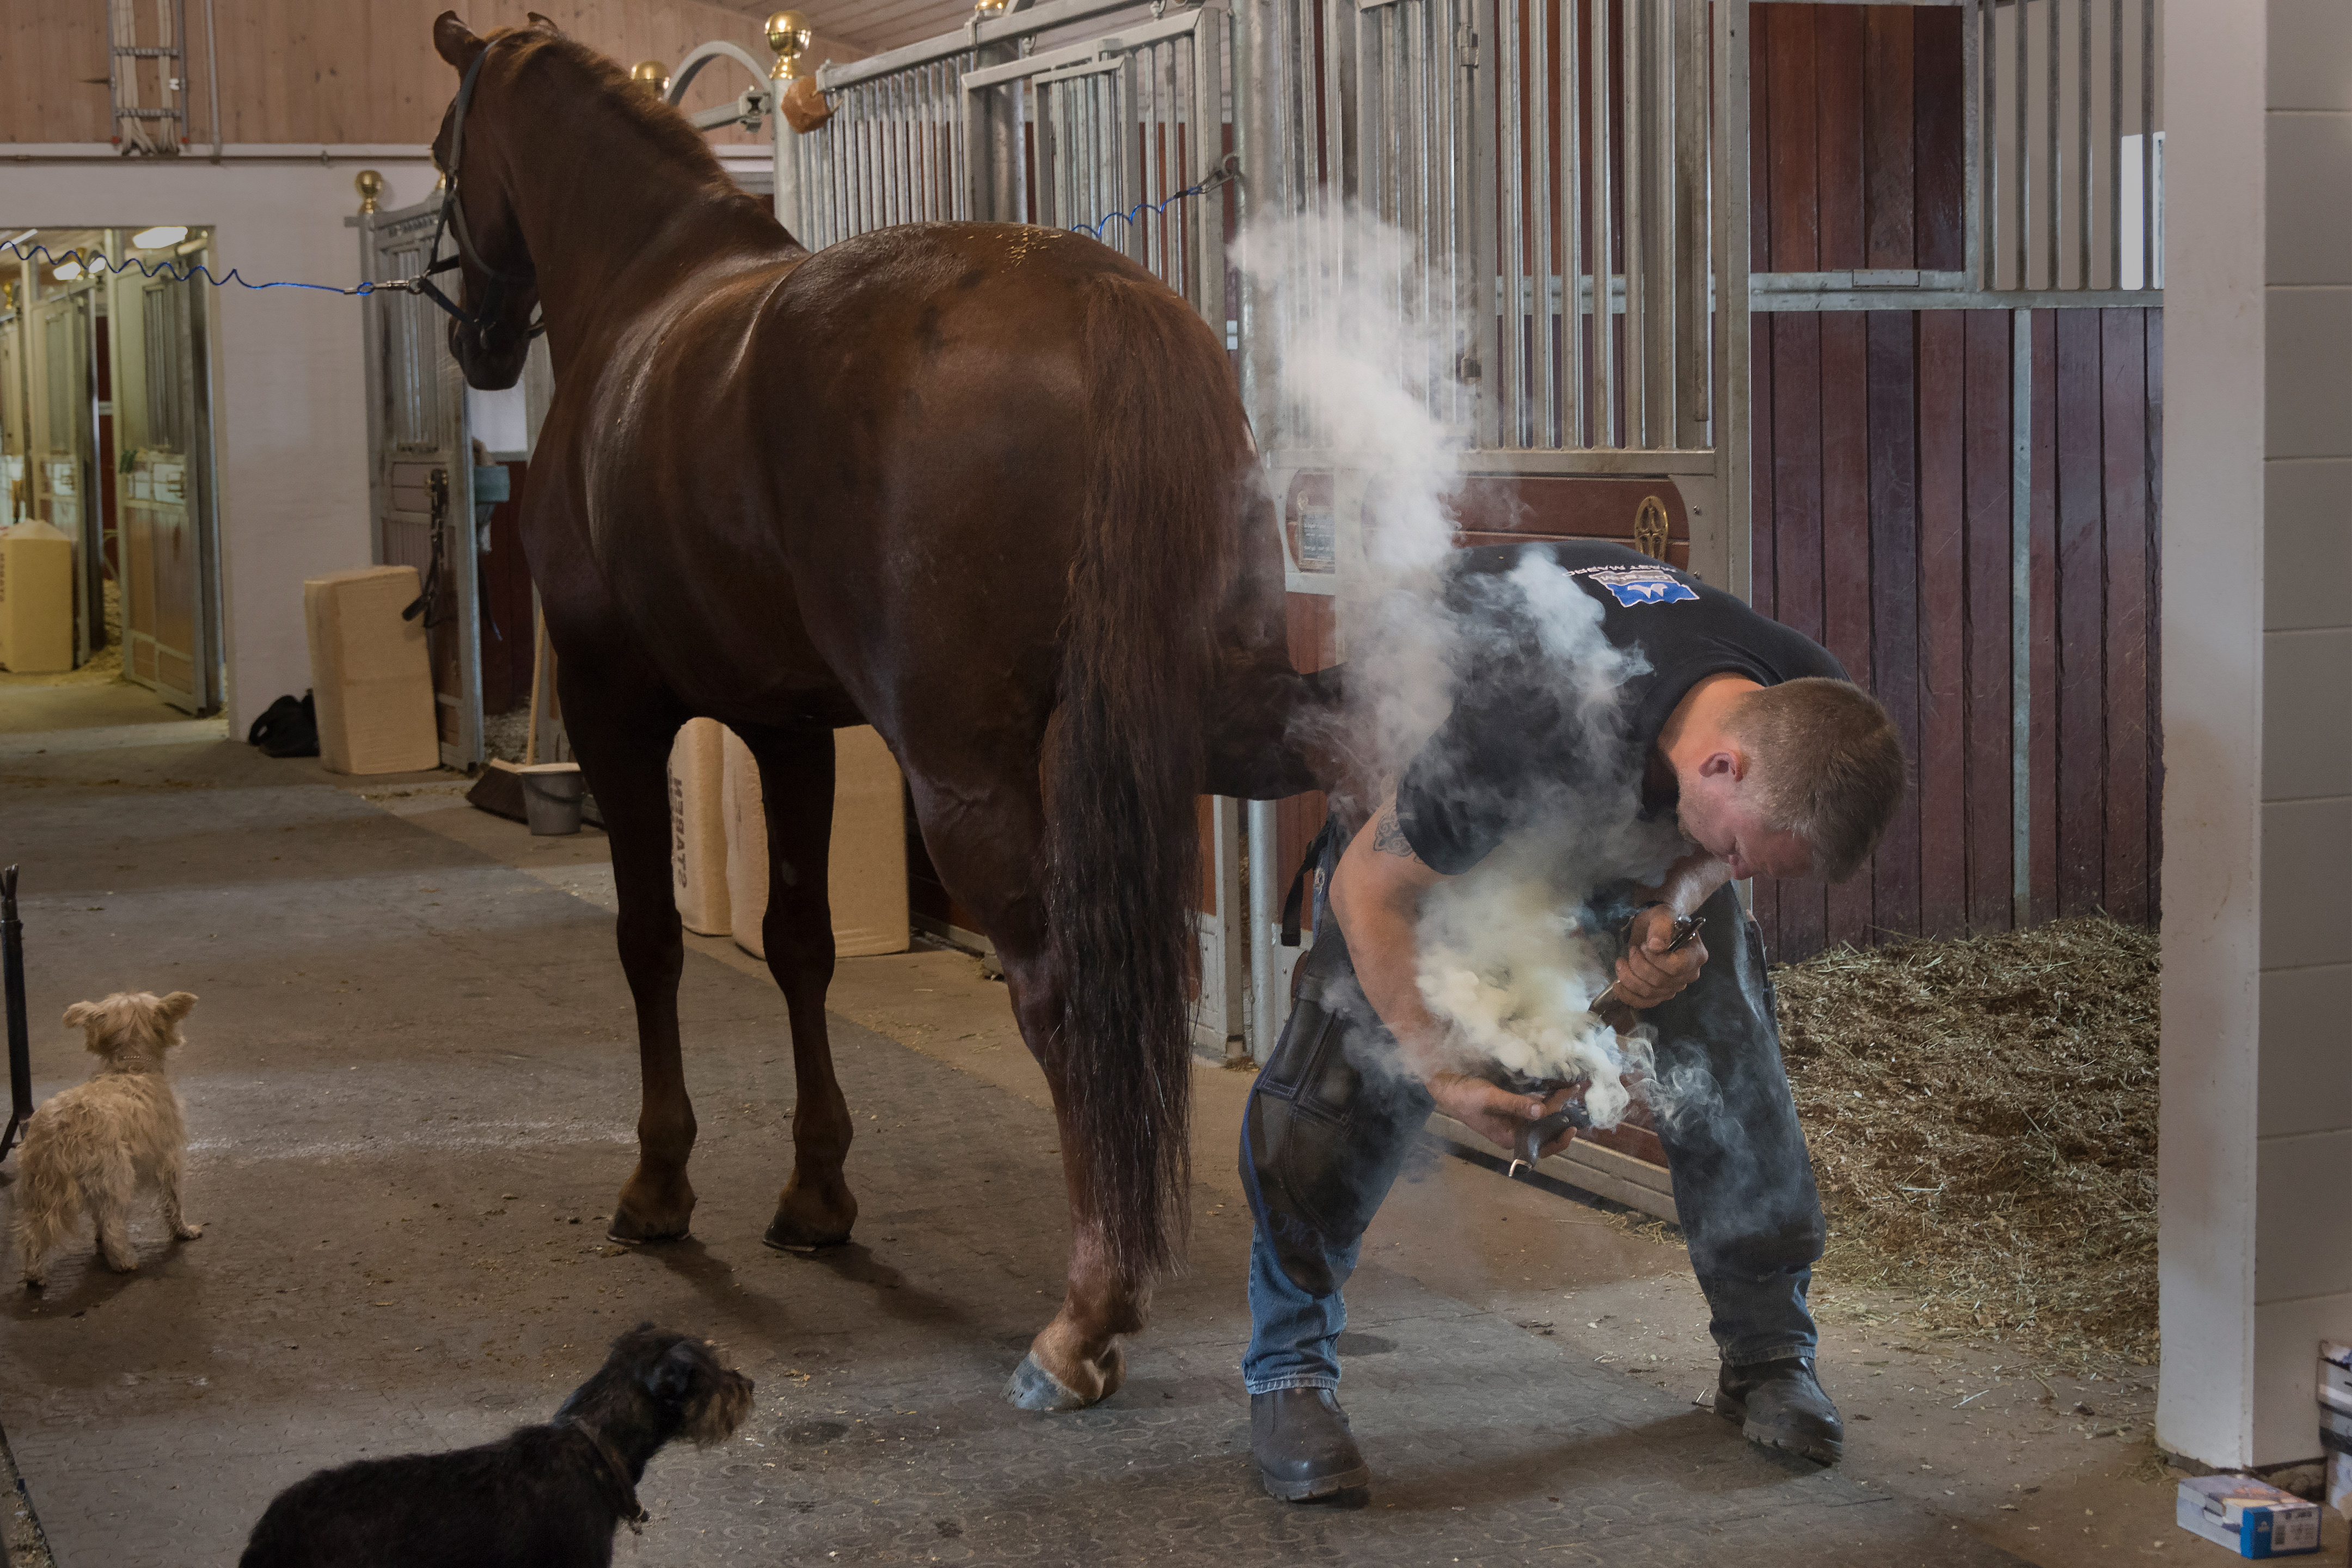 Norwegian farrier Aksel Vibe shoeing a horse in a stable